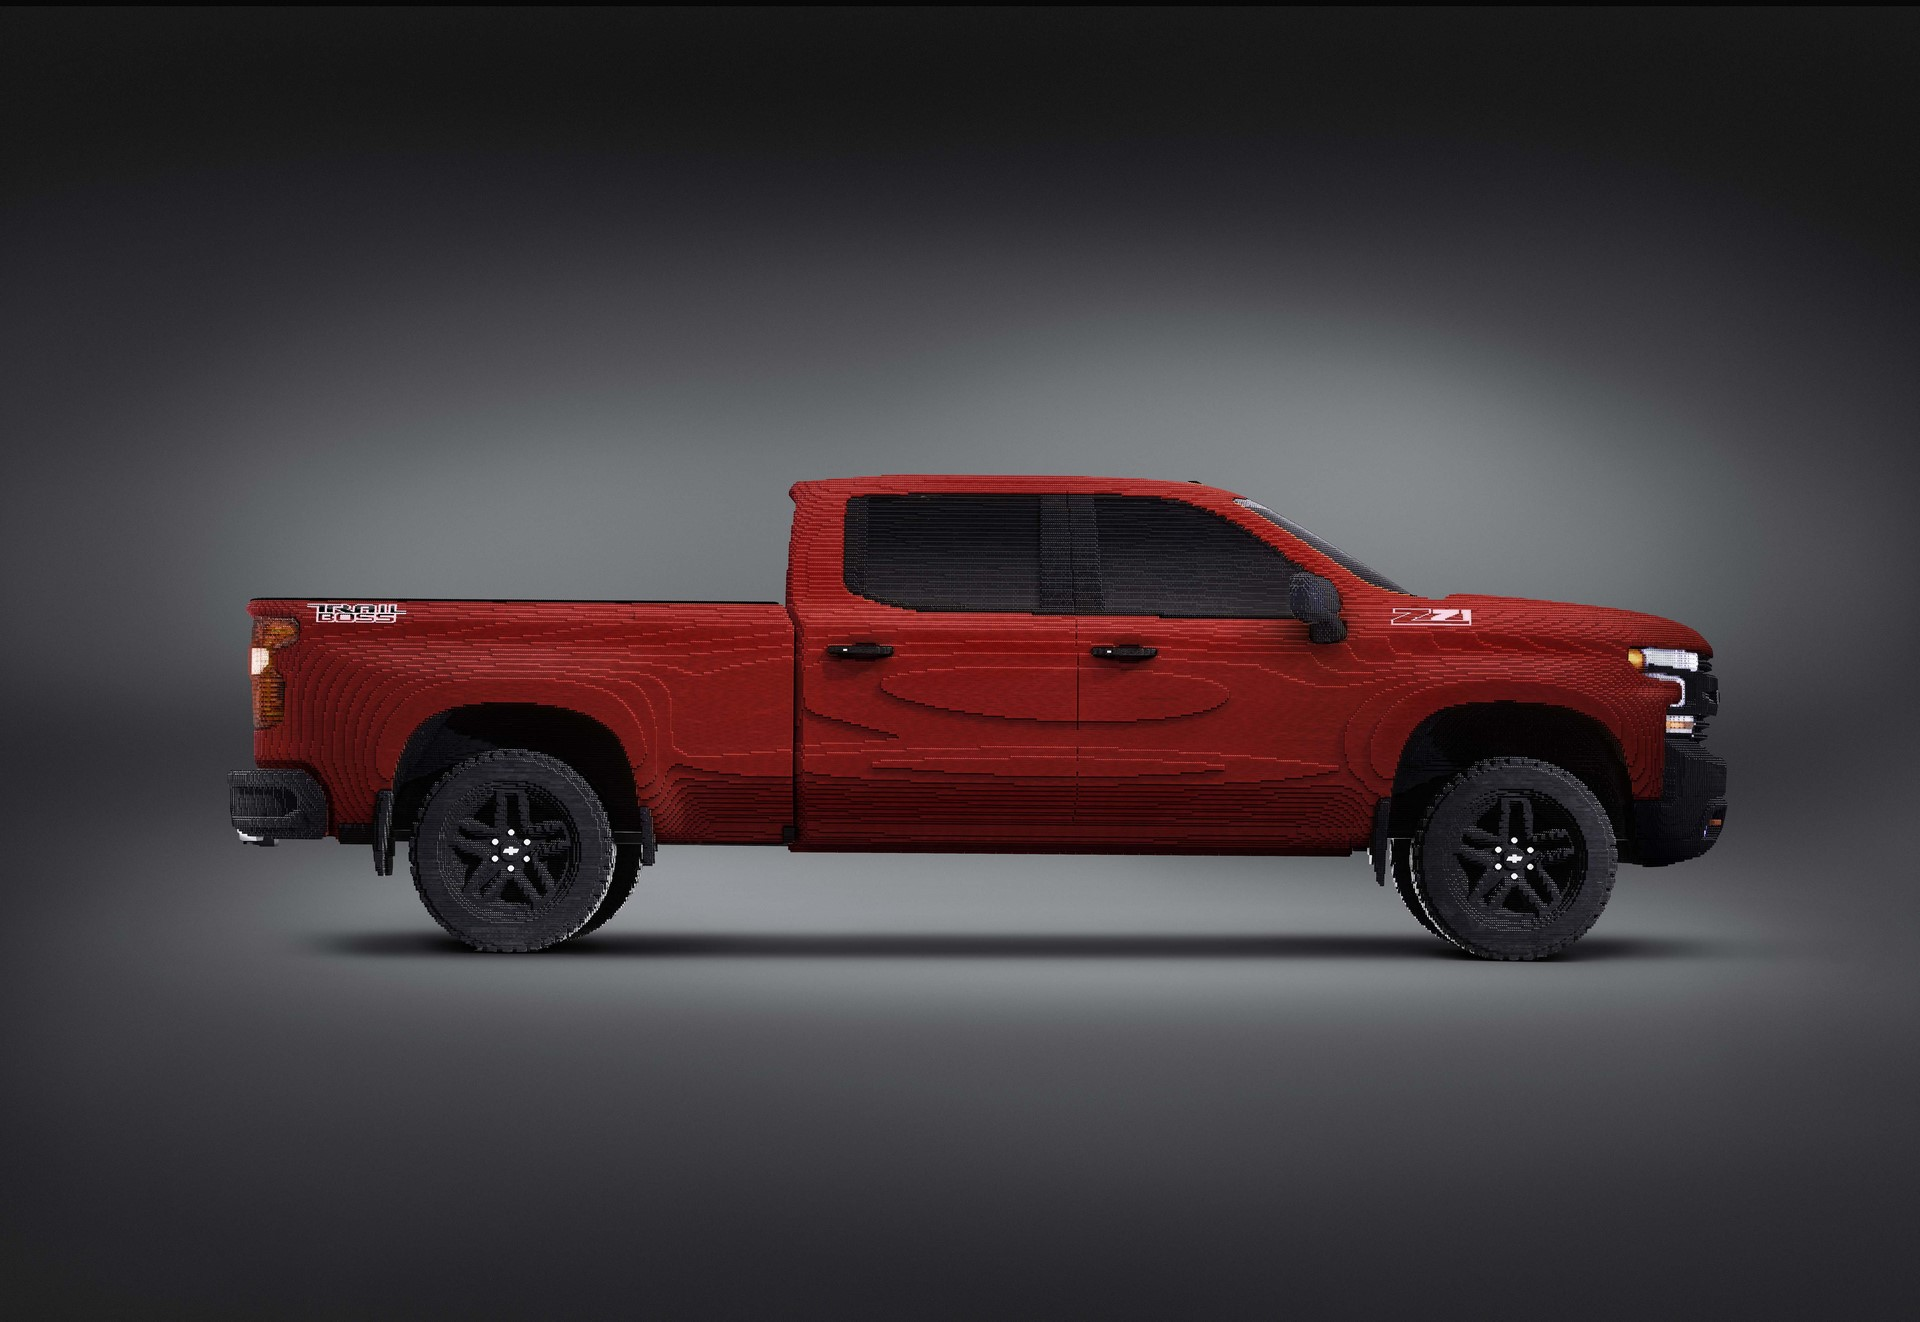 Chevrolet revealed the first-ever full-size LEGO® Silverado at the North American International Auto Show. The truck is a continuation of the partnership between Chevy and Warner Bros. that began in 2017 with the LEGO® Batmobile.